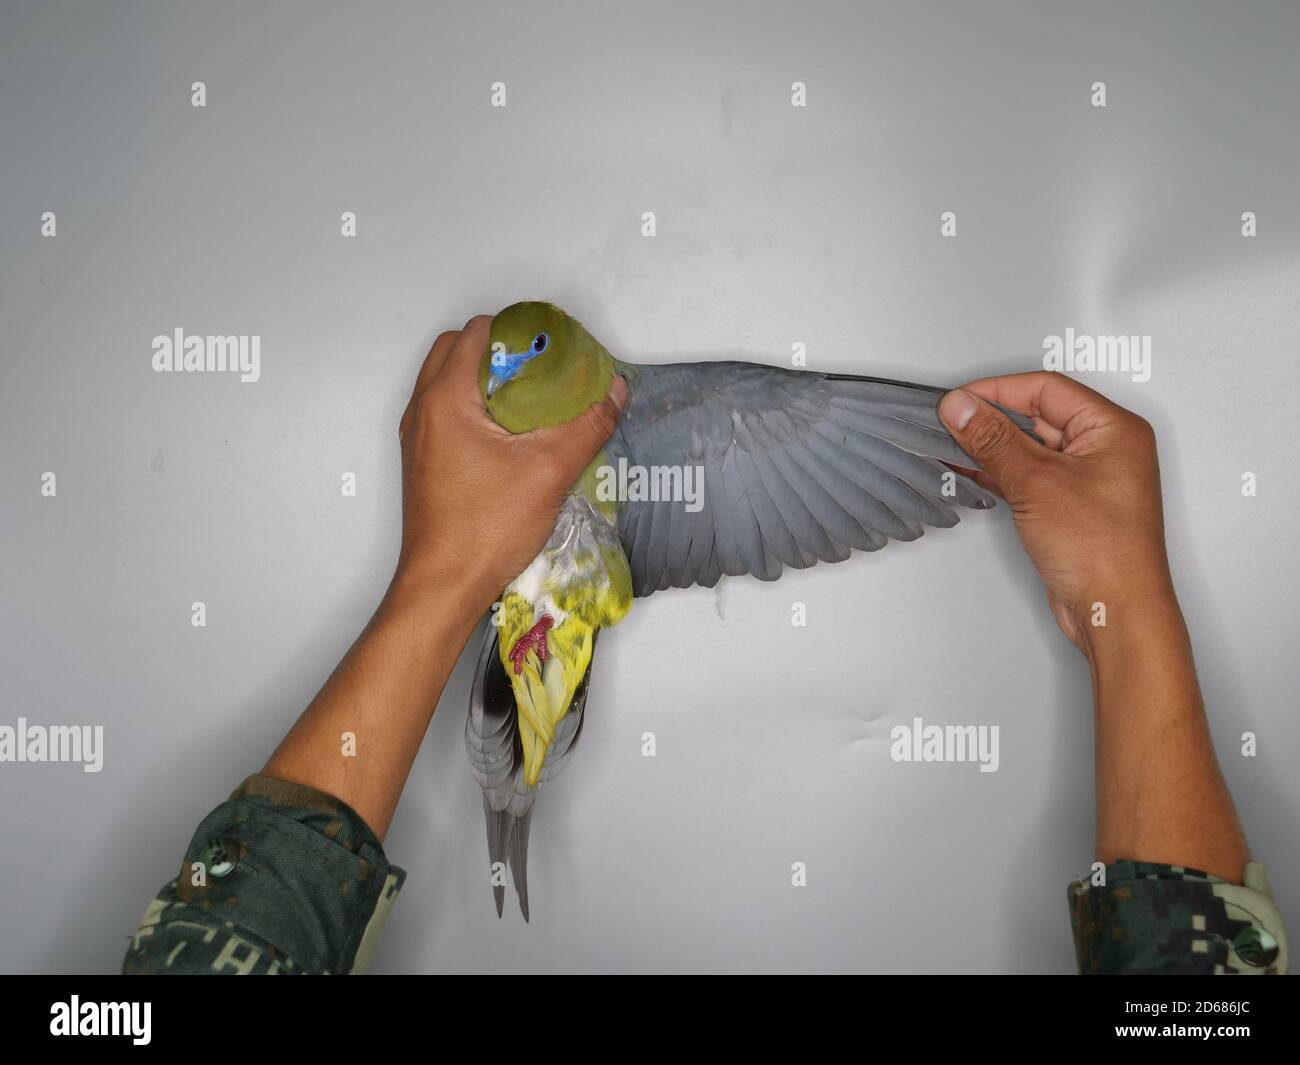 Cheng Qian High Resolution Stock Photography And Images Alamy